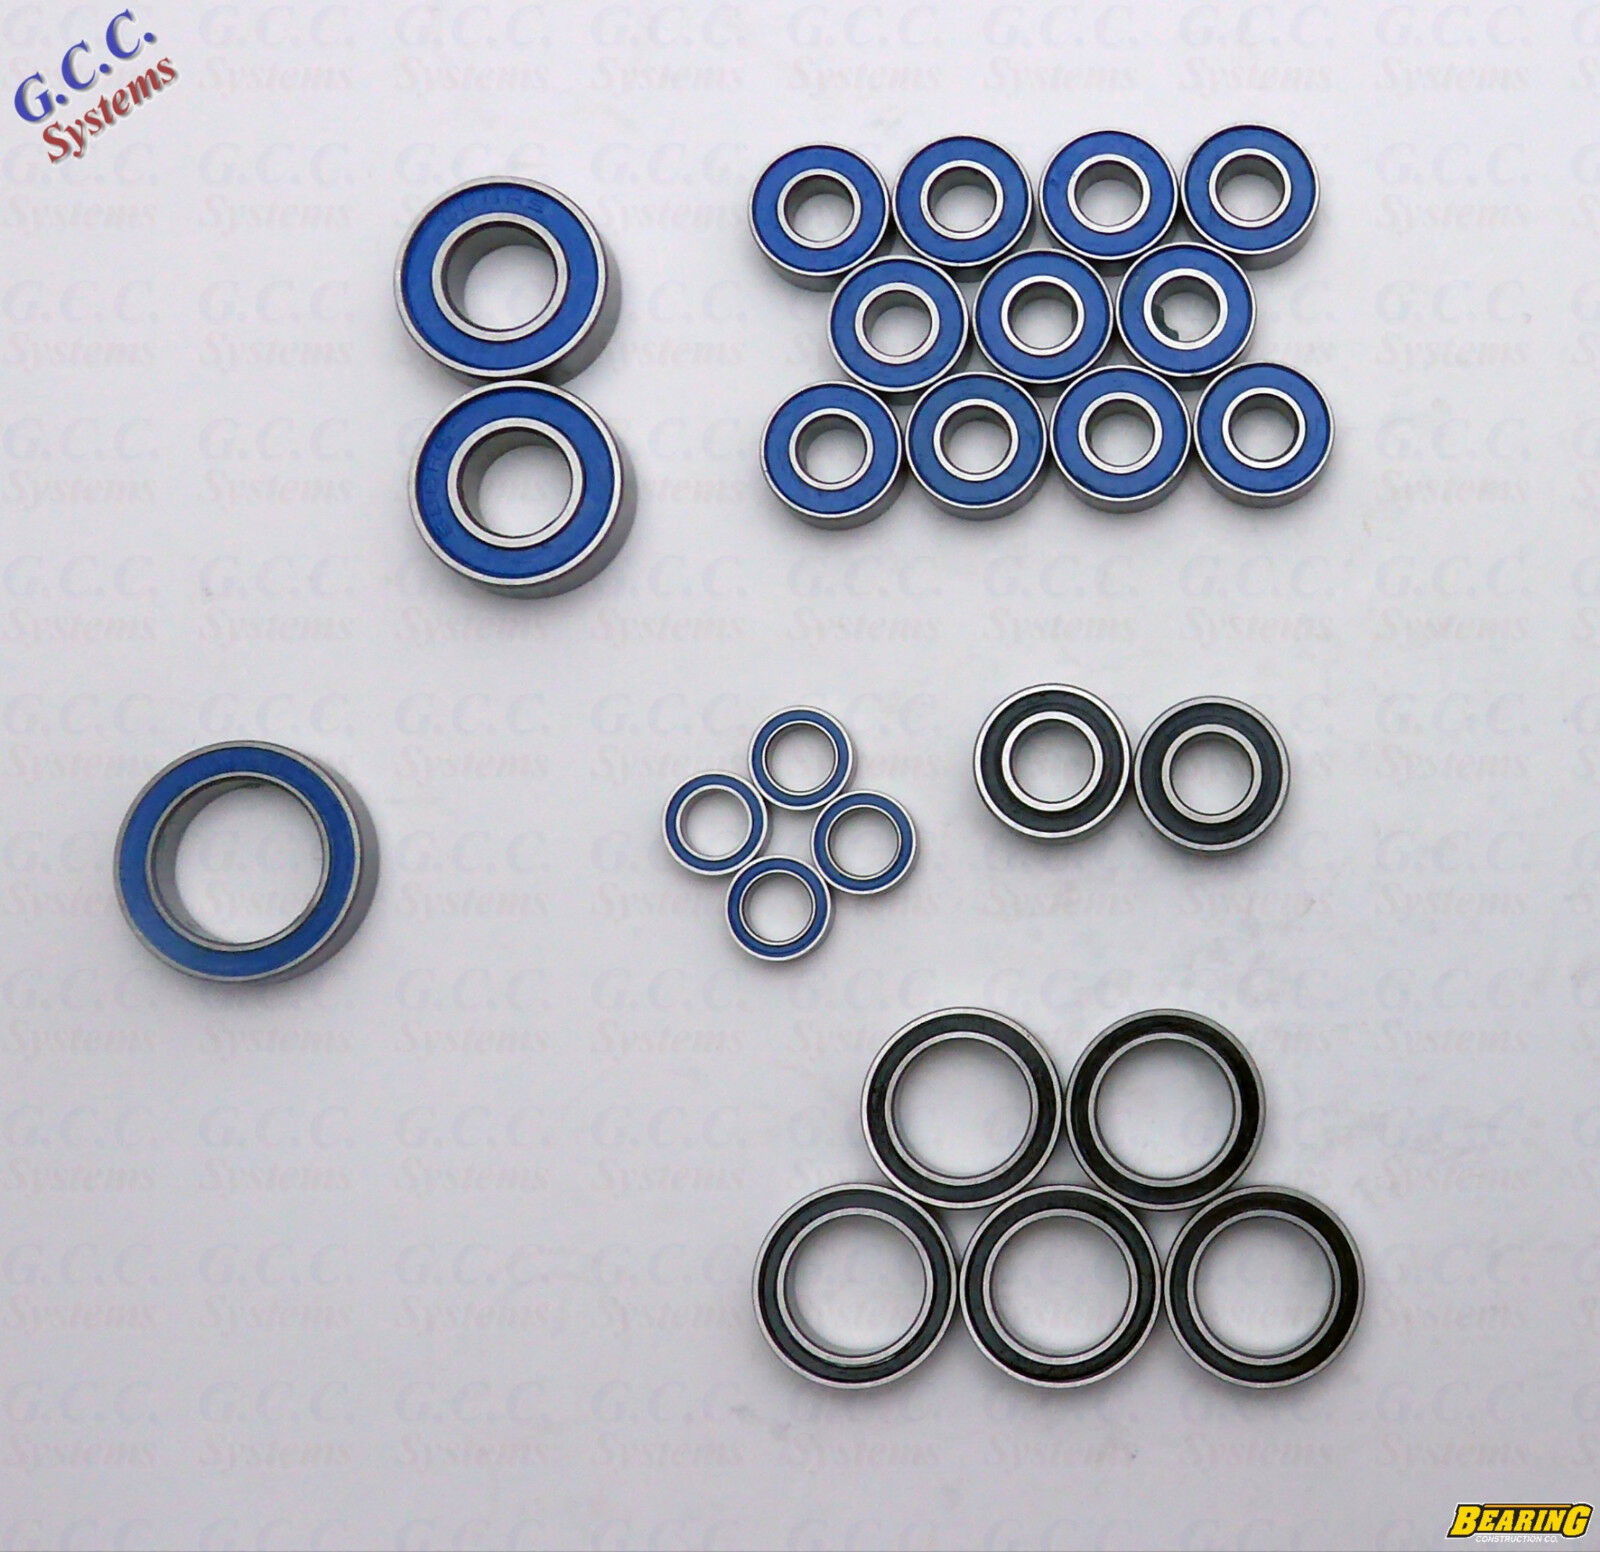 Quality Replacement Bearing Set For Traxxas Stampede 4x4 VXL - BRAND NEW